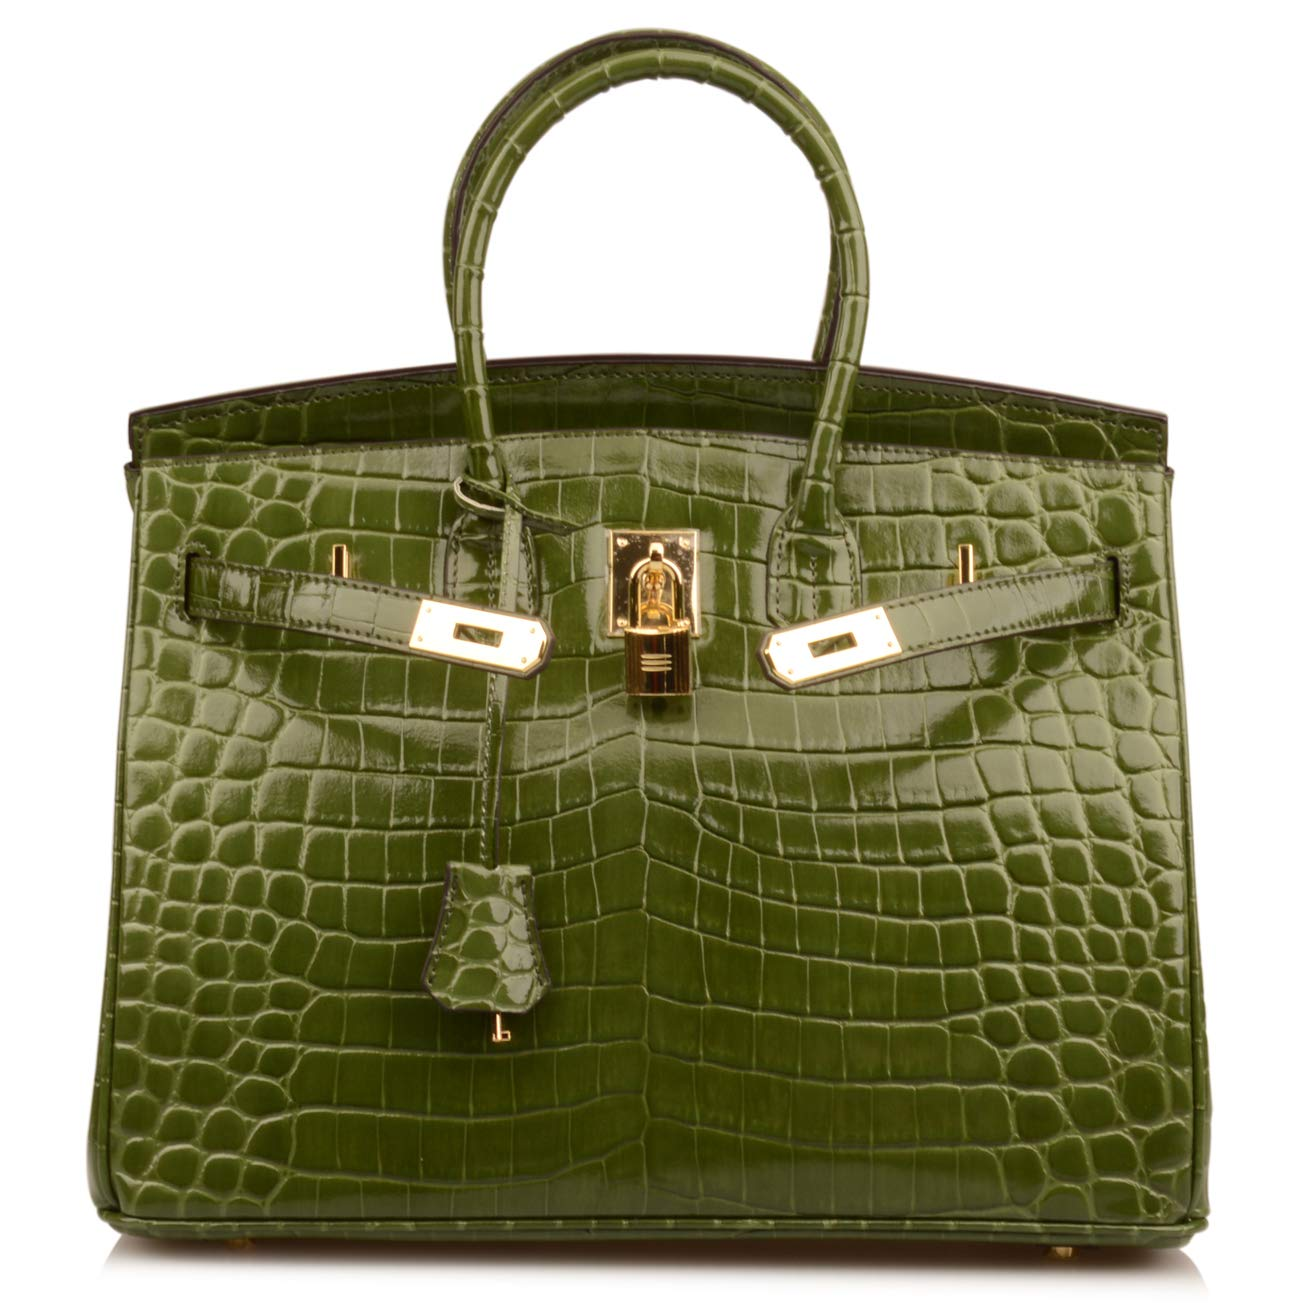 Qidell Women's Padlock Patent Leather Crocodile Embossed Handbag On Clearance (35 cm.Olive green)